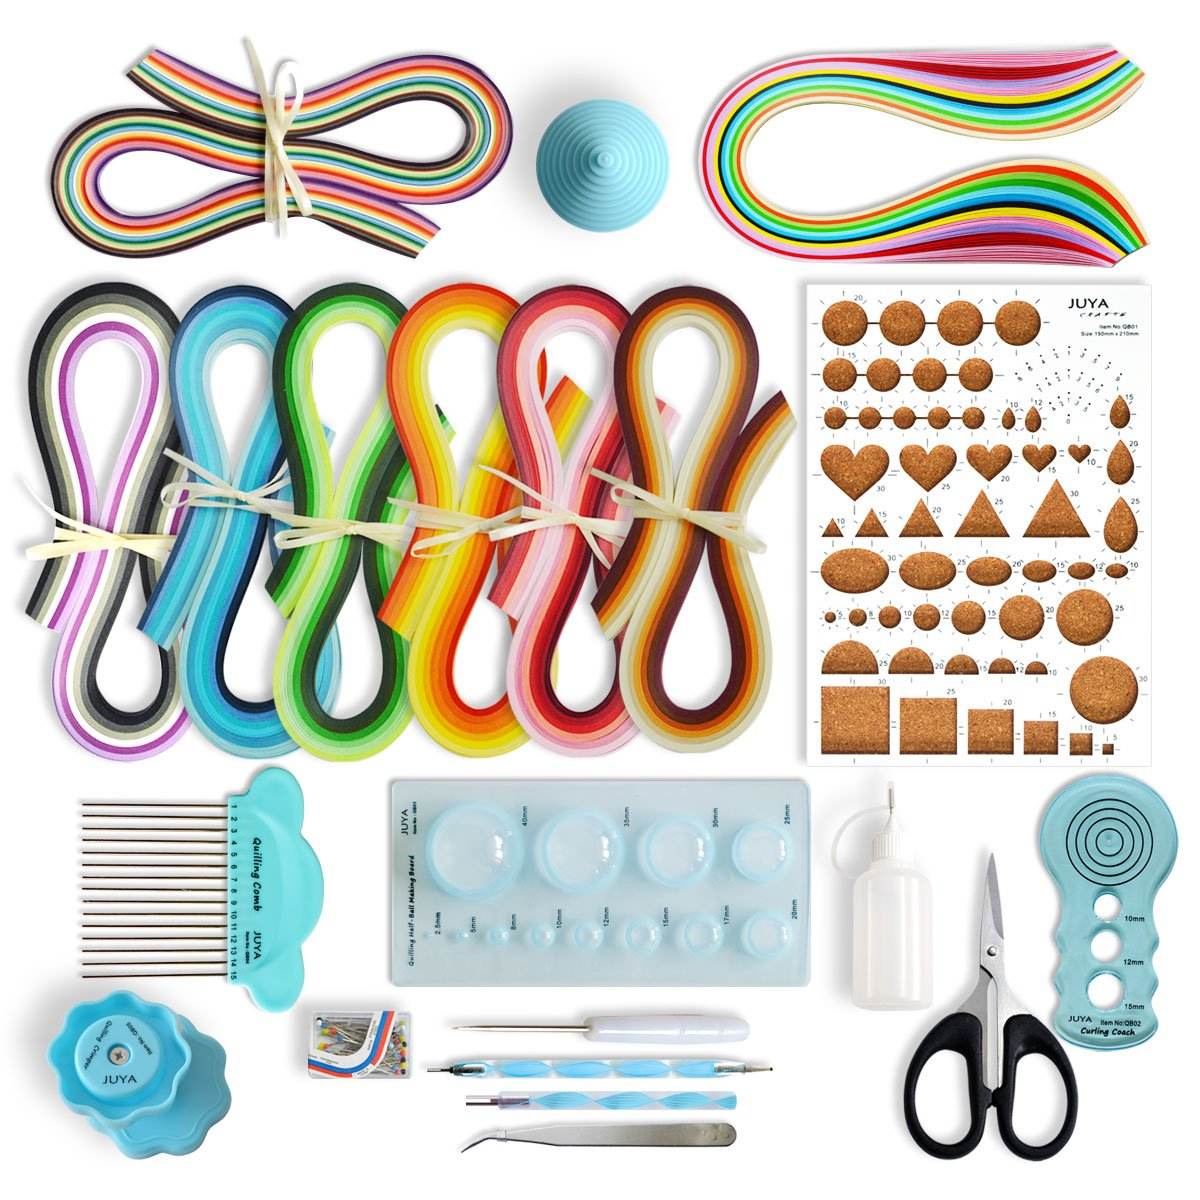 JUYA Paper Quilling Kits 960 Strips 13 Tools (Blue Tools, Paper Width 3mm)